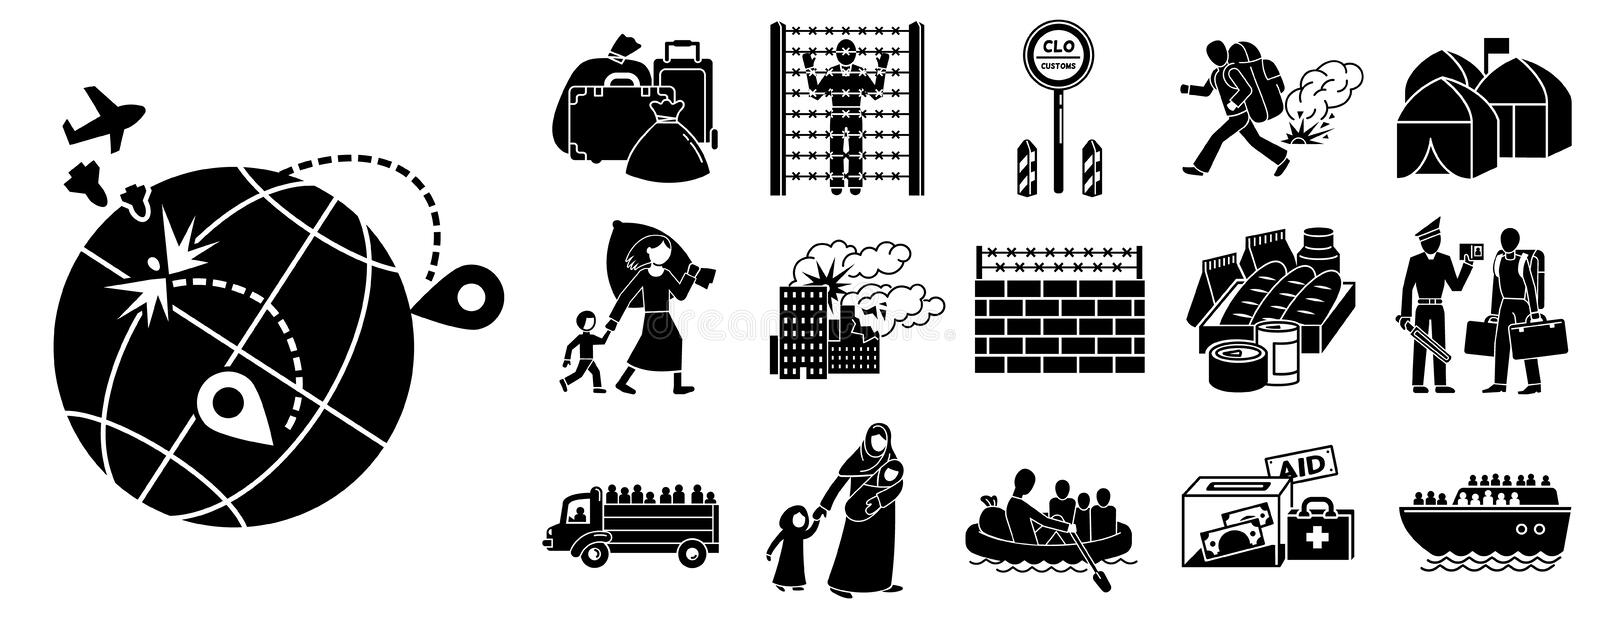 Immigration icon set, simple style royalty free illustration